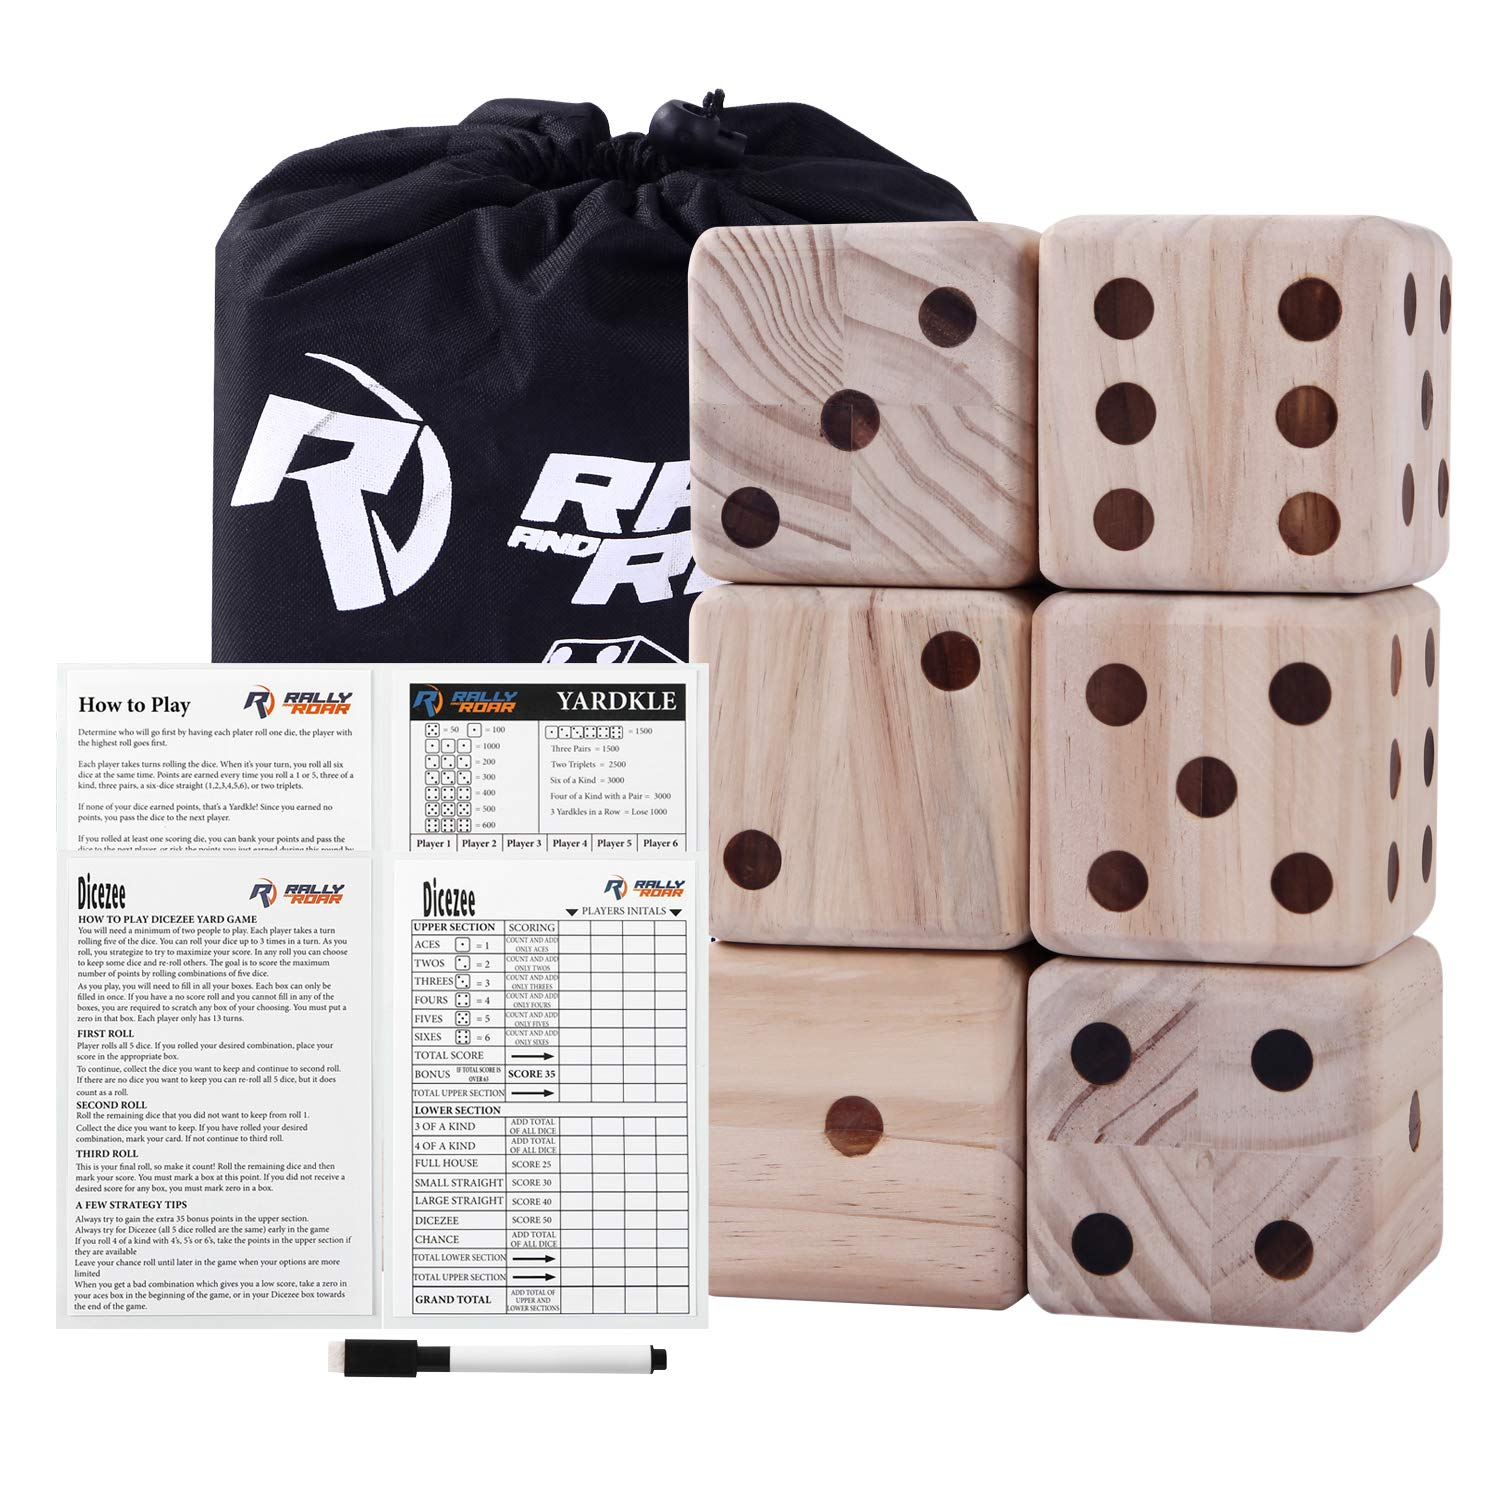 Giant Dice Game Set For Adults Kids Families Outdoor Wooden Dice Games Sets Fun Interactive Clean Family Games Clean Interactive Activities